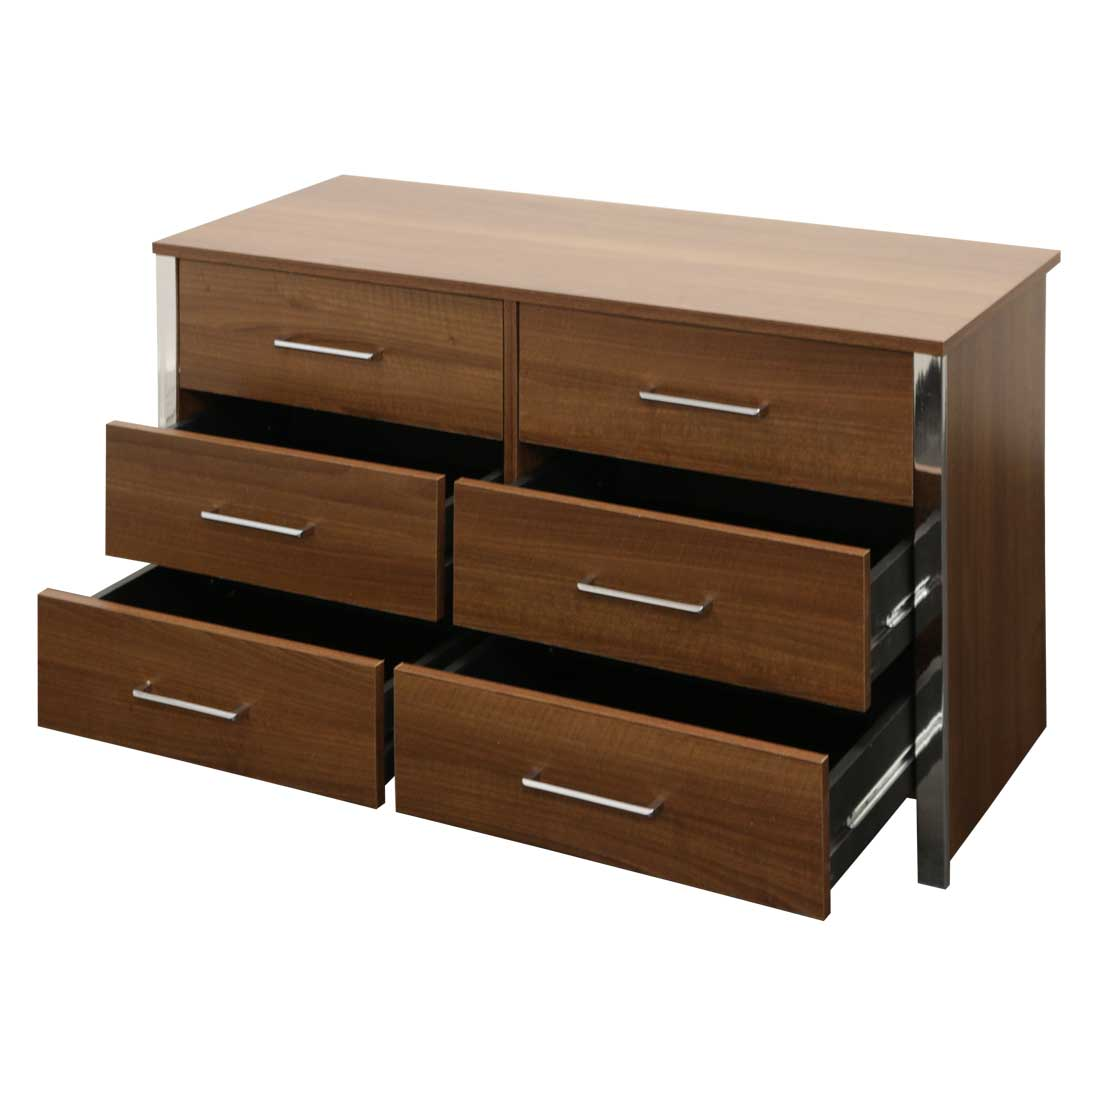 GOSPORT WIDE 6 DRAWER CHEST WALNUT